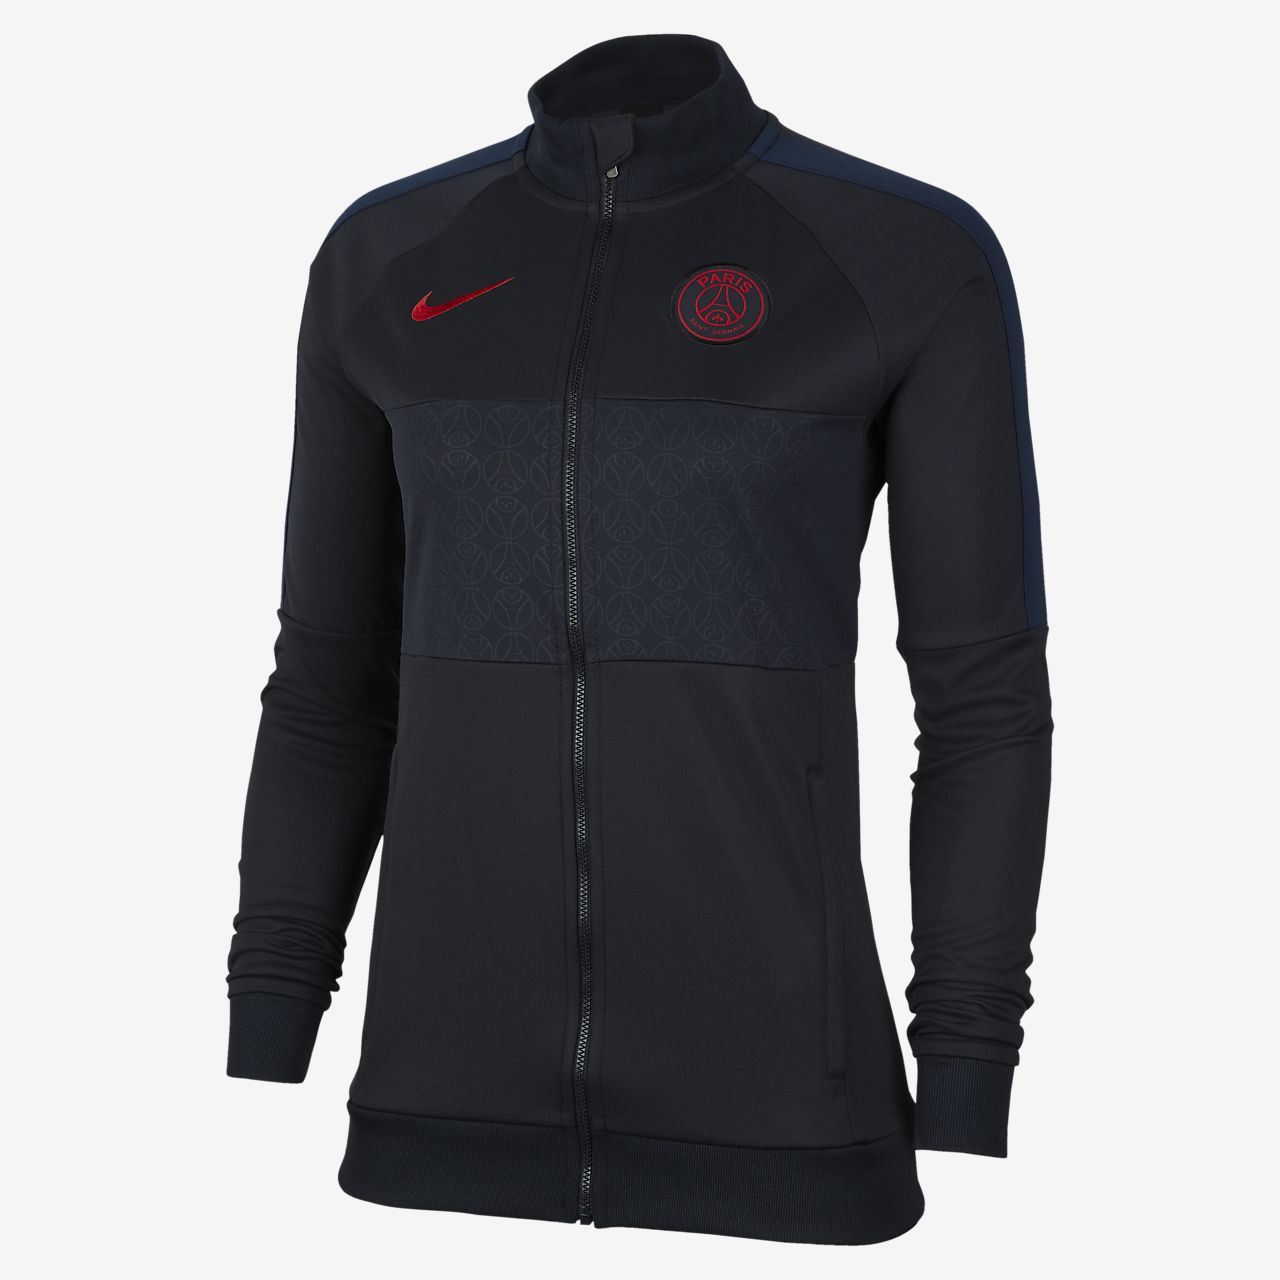 Paris Saint-Germain Women's Jacket